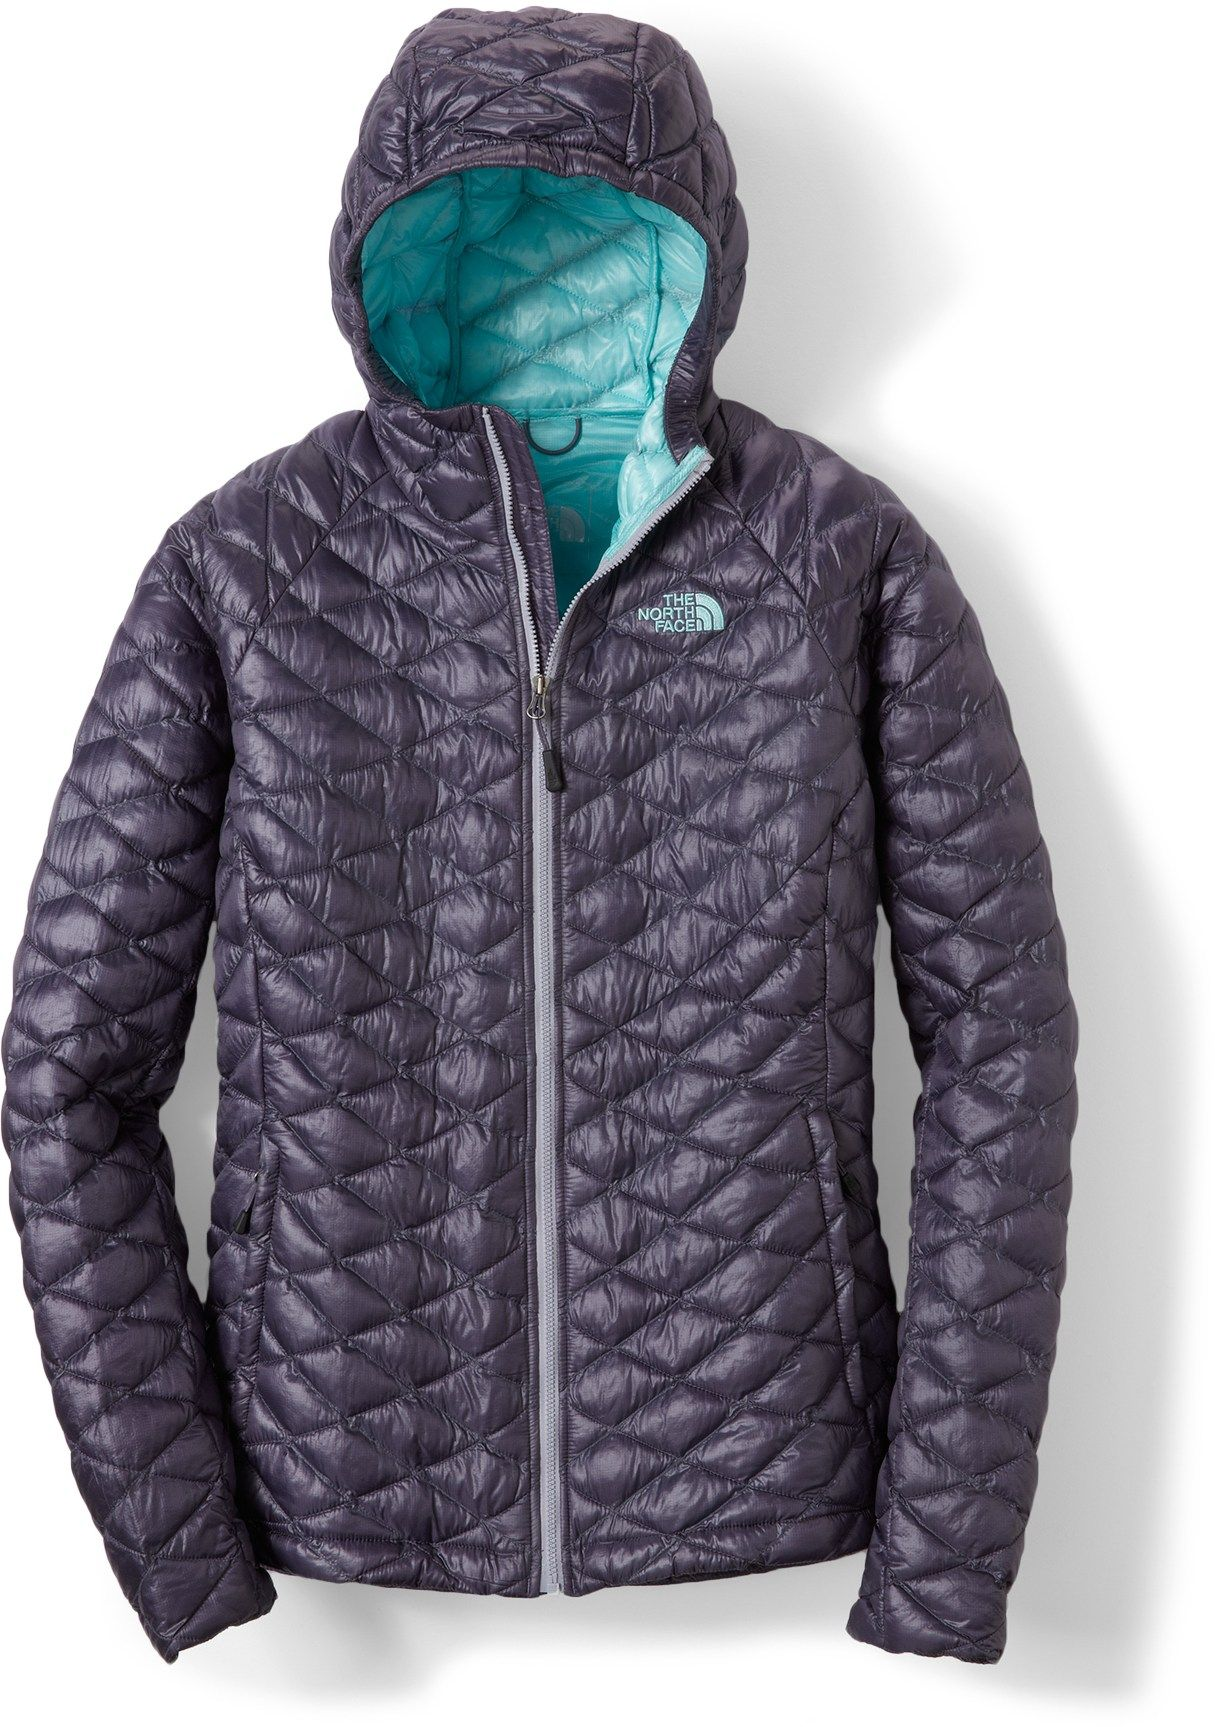 518696a686f9 The North Face ThermoBall Hoodie Jacket - Women s - Free Shipping at  REI.com - greystone blue   sports chalet